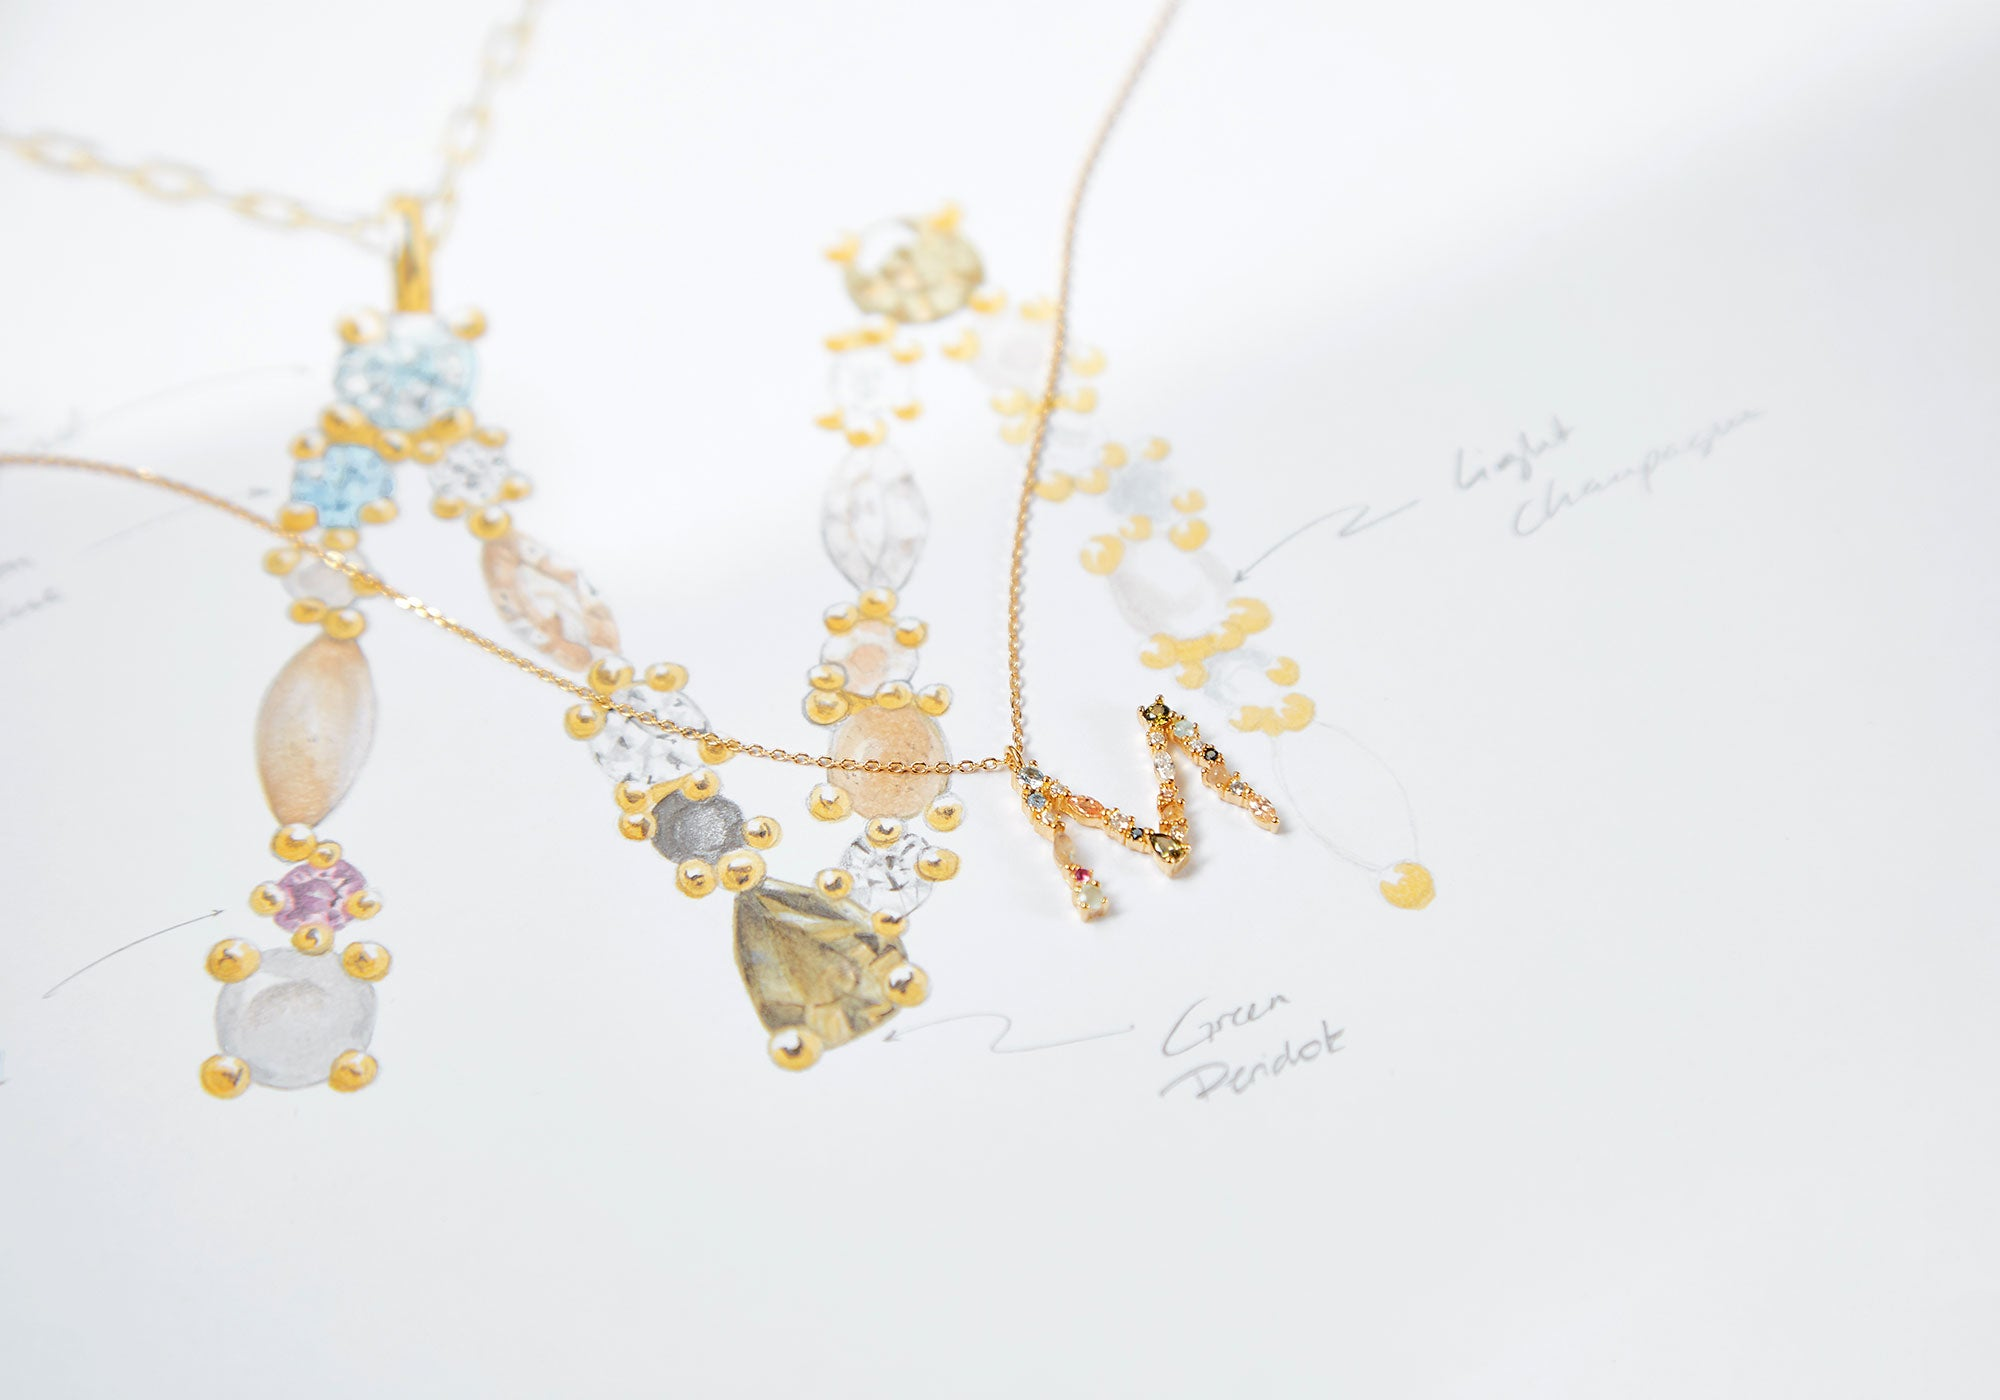 A Name, a story: how jewelry expresses our identity